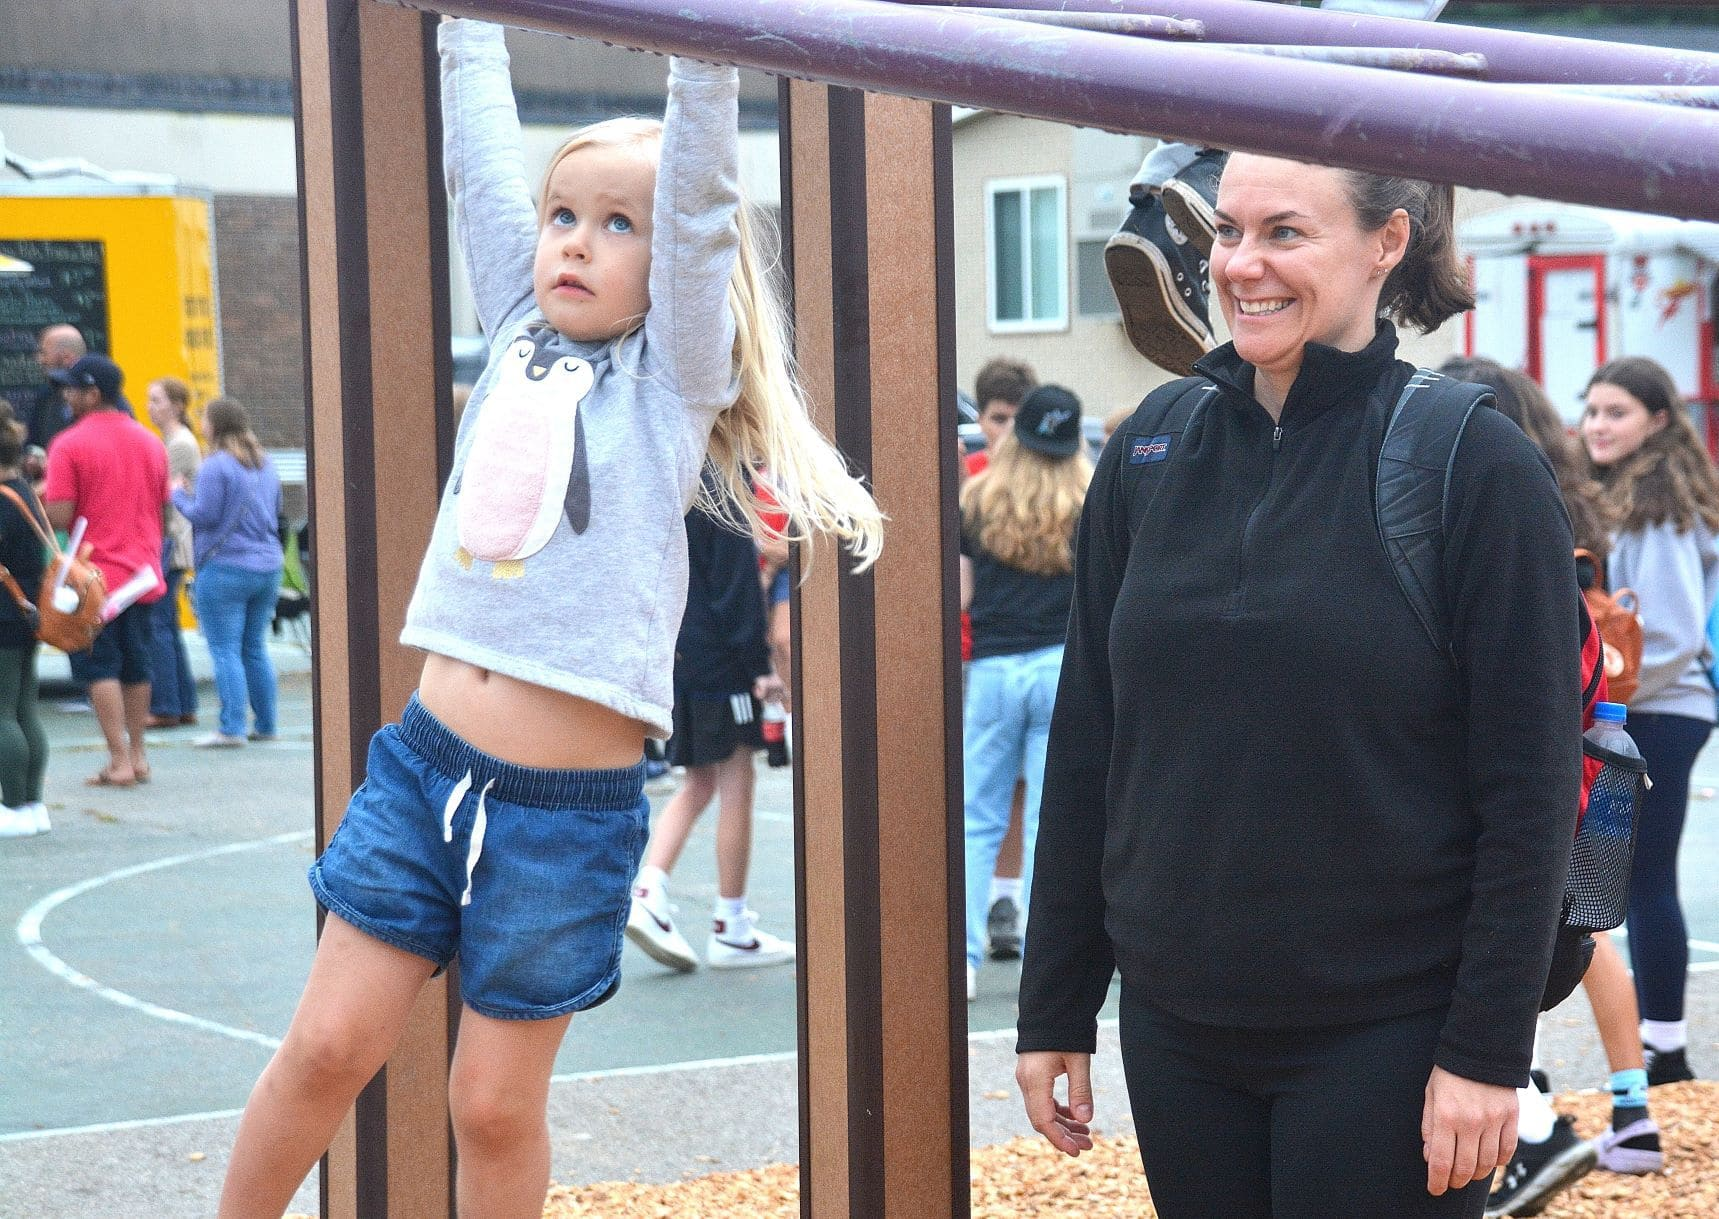 Ava Tumeinski, 3, tries her hand on monkey bars with her mother Jen nearby in case assistance is needed.